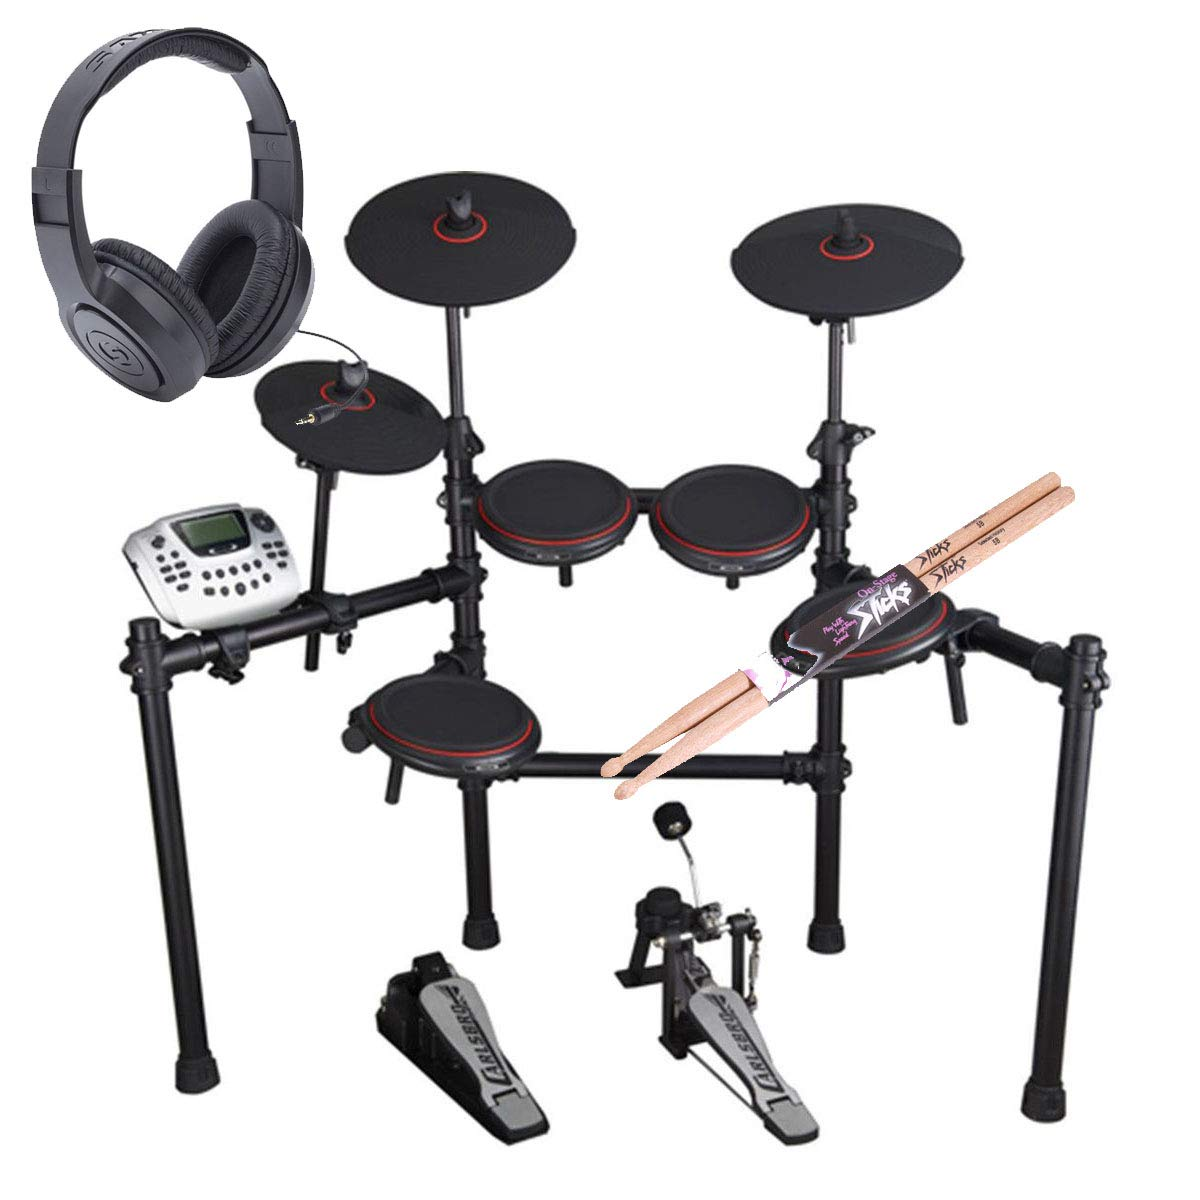 Carlsbro CSD180 8-Piece Enhanced Electronic Drum Kit with Over-Ear Stereo Headphones - Pair of Drumsticks - Top Value Bundle! by Carlsbro